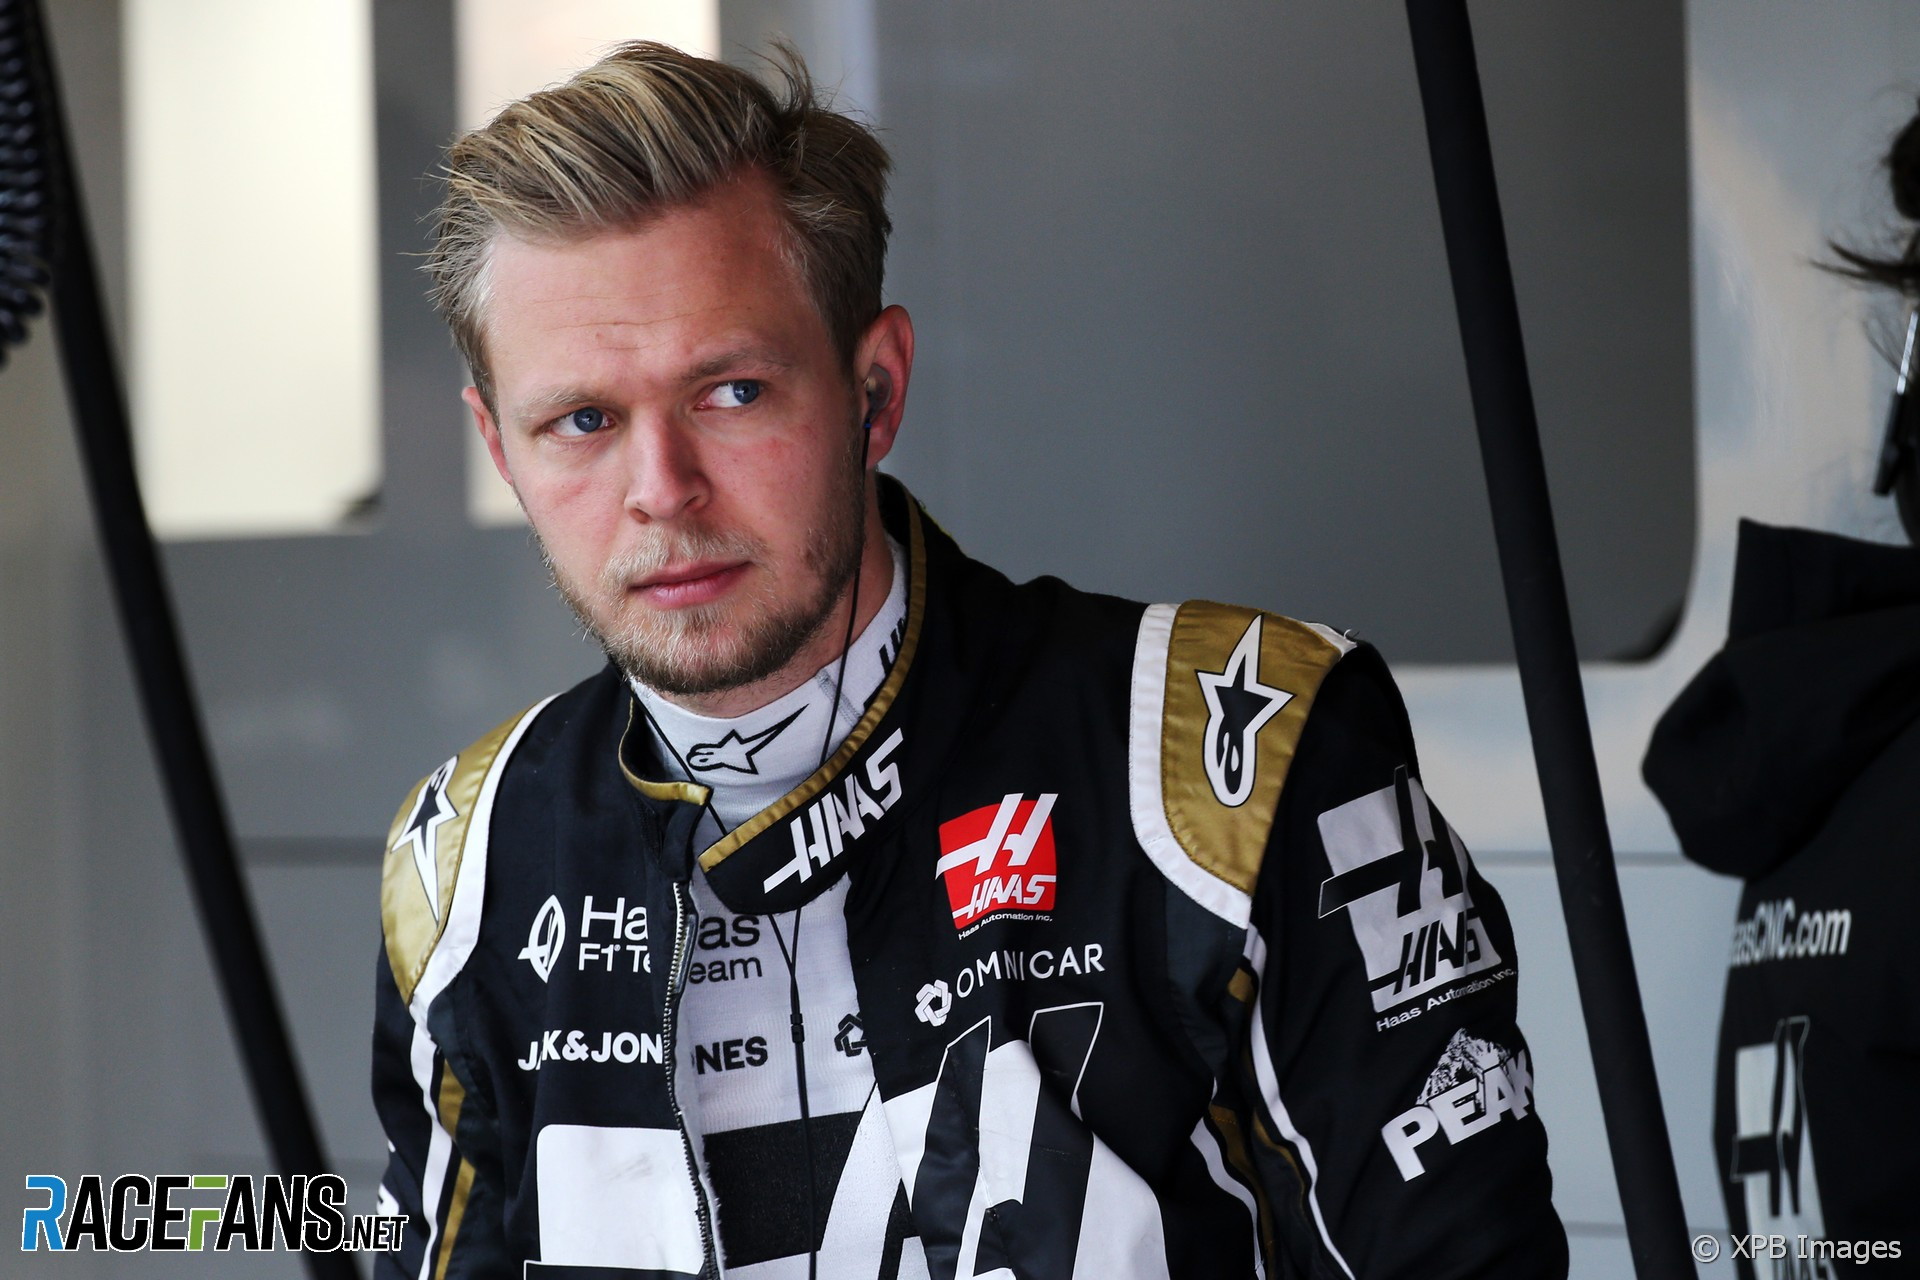 Kevin Magnussen, Haas, Circuit of the Americas, 2019